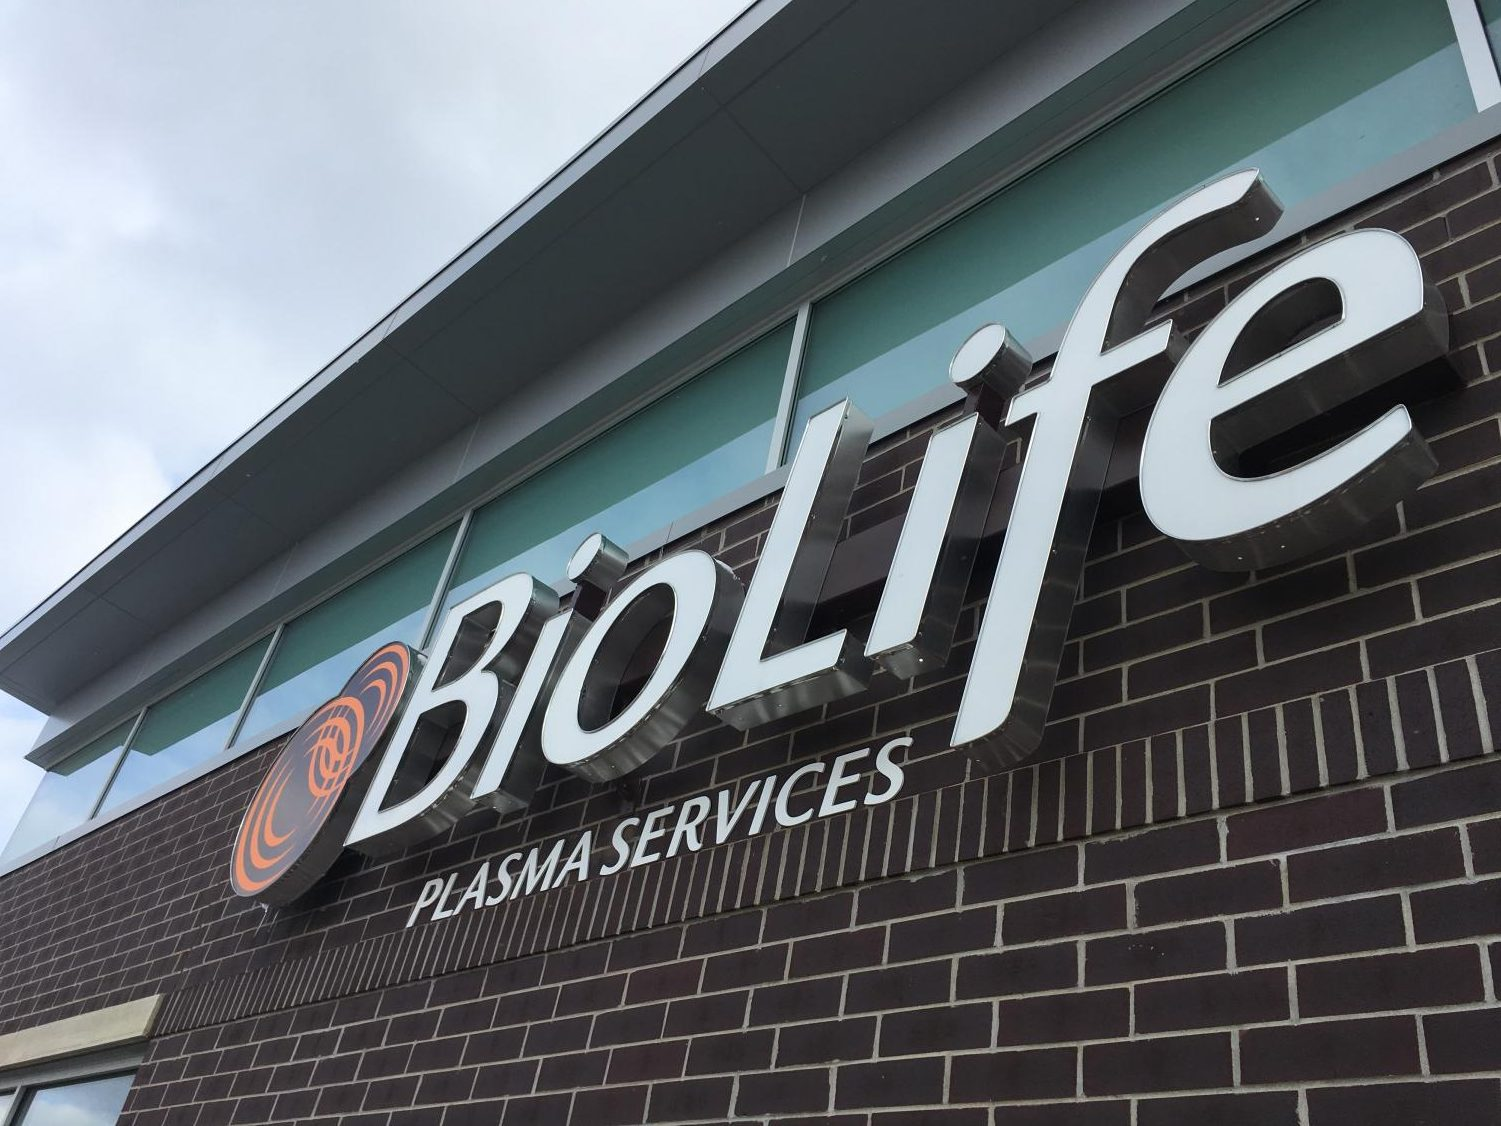 At BioLife, at the corner of East Paris Ave. and Sparks Drive in Grand Rapids, less than a liter of plasma and an hour and a half can earn students $20-50. Photo by David Fitch.